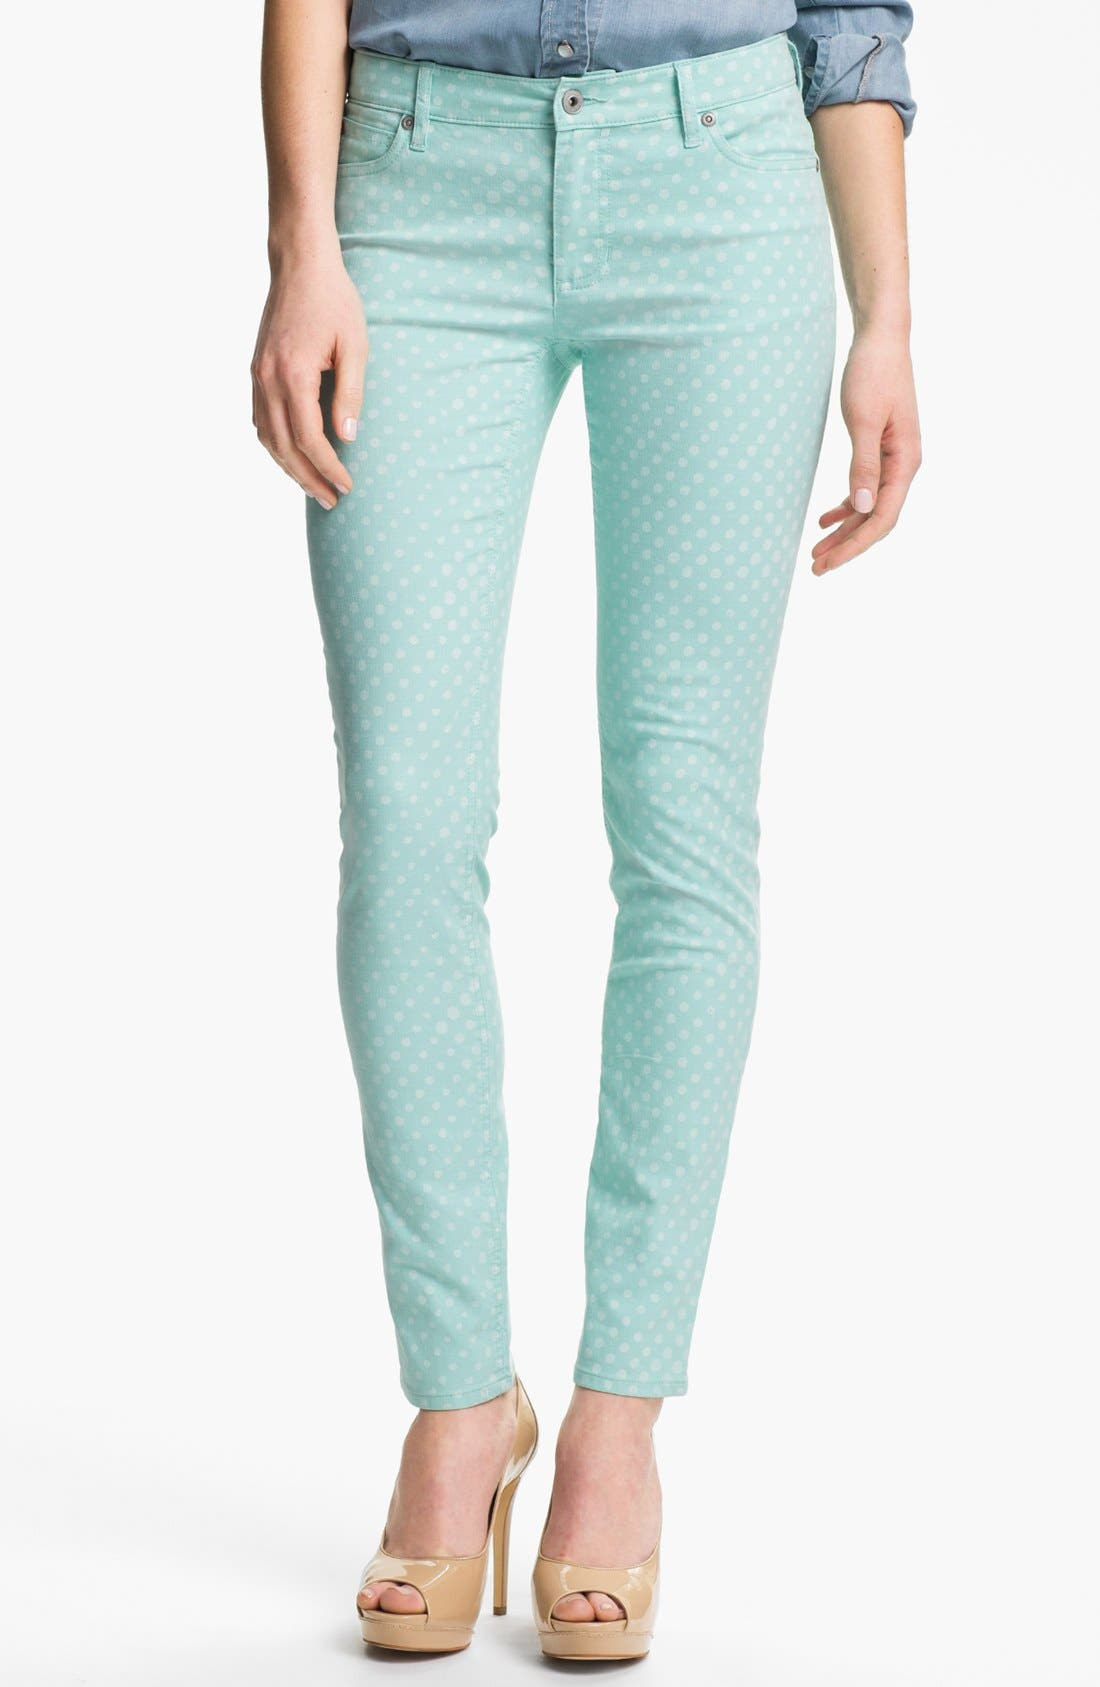 Main Image - Two by Vince Camuto Polka Dot Straight Leg Jeans (Petite)